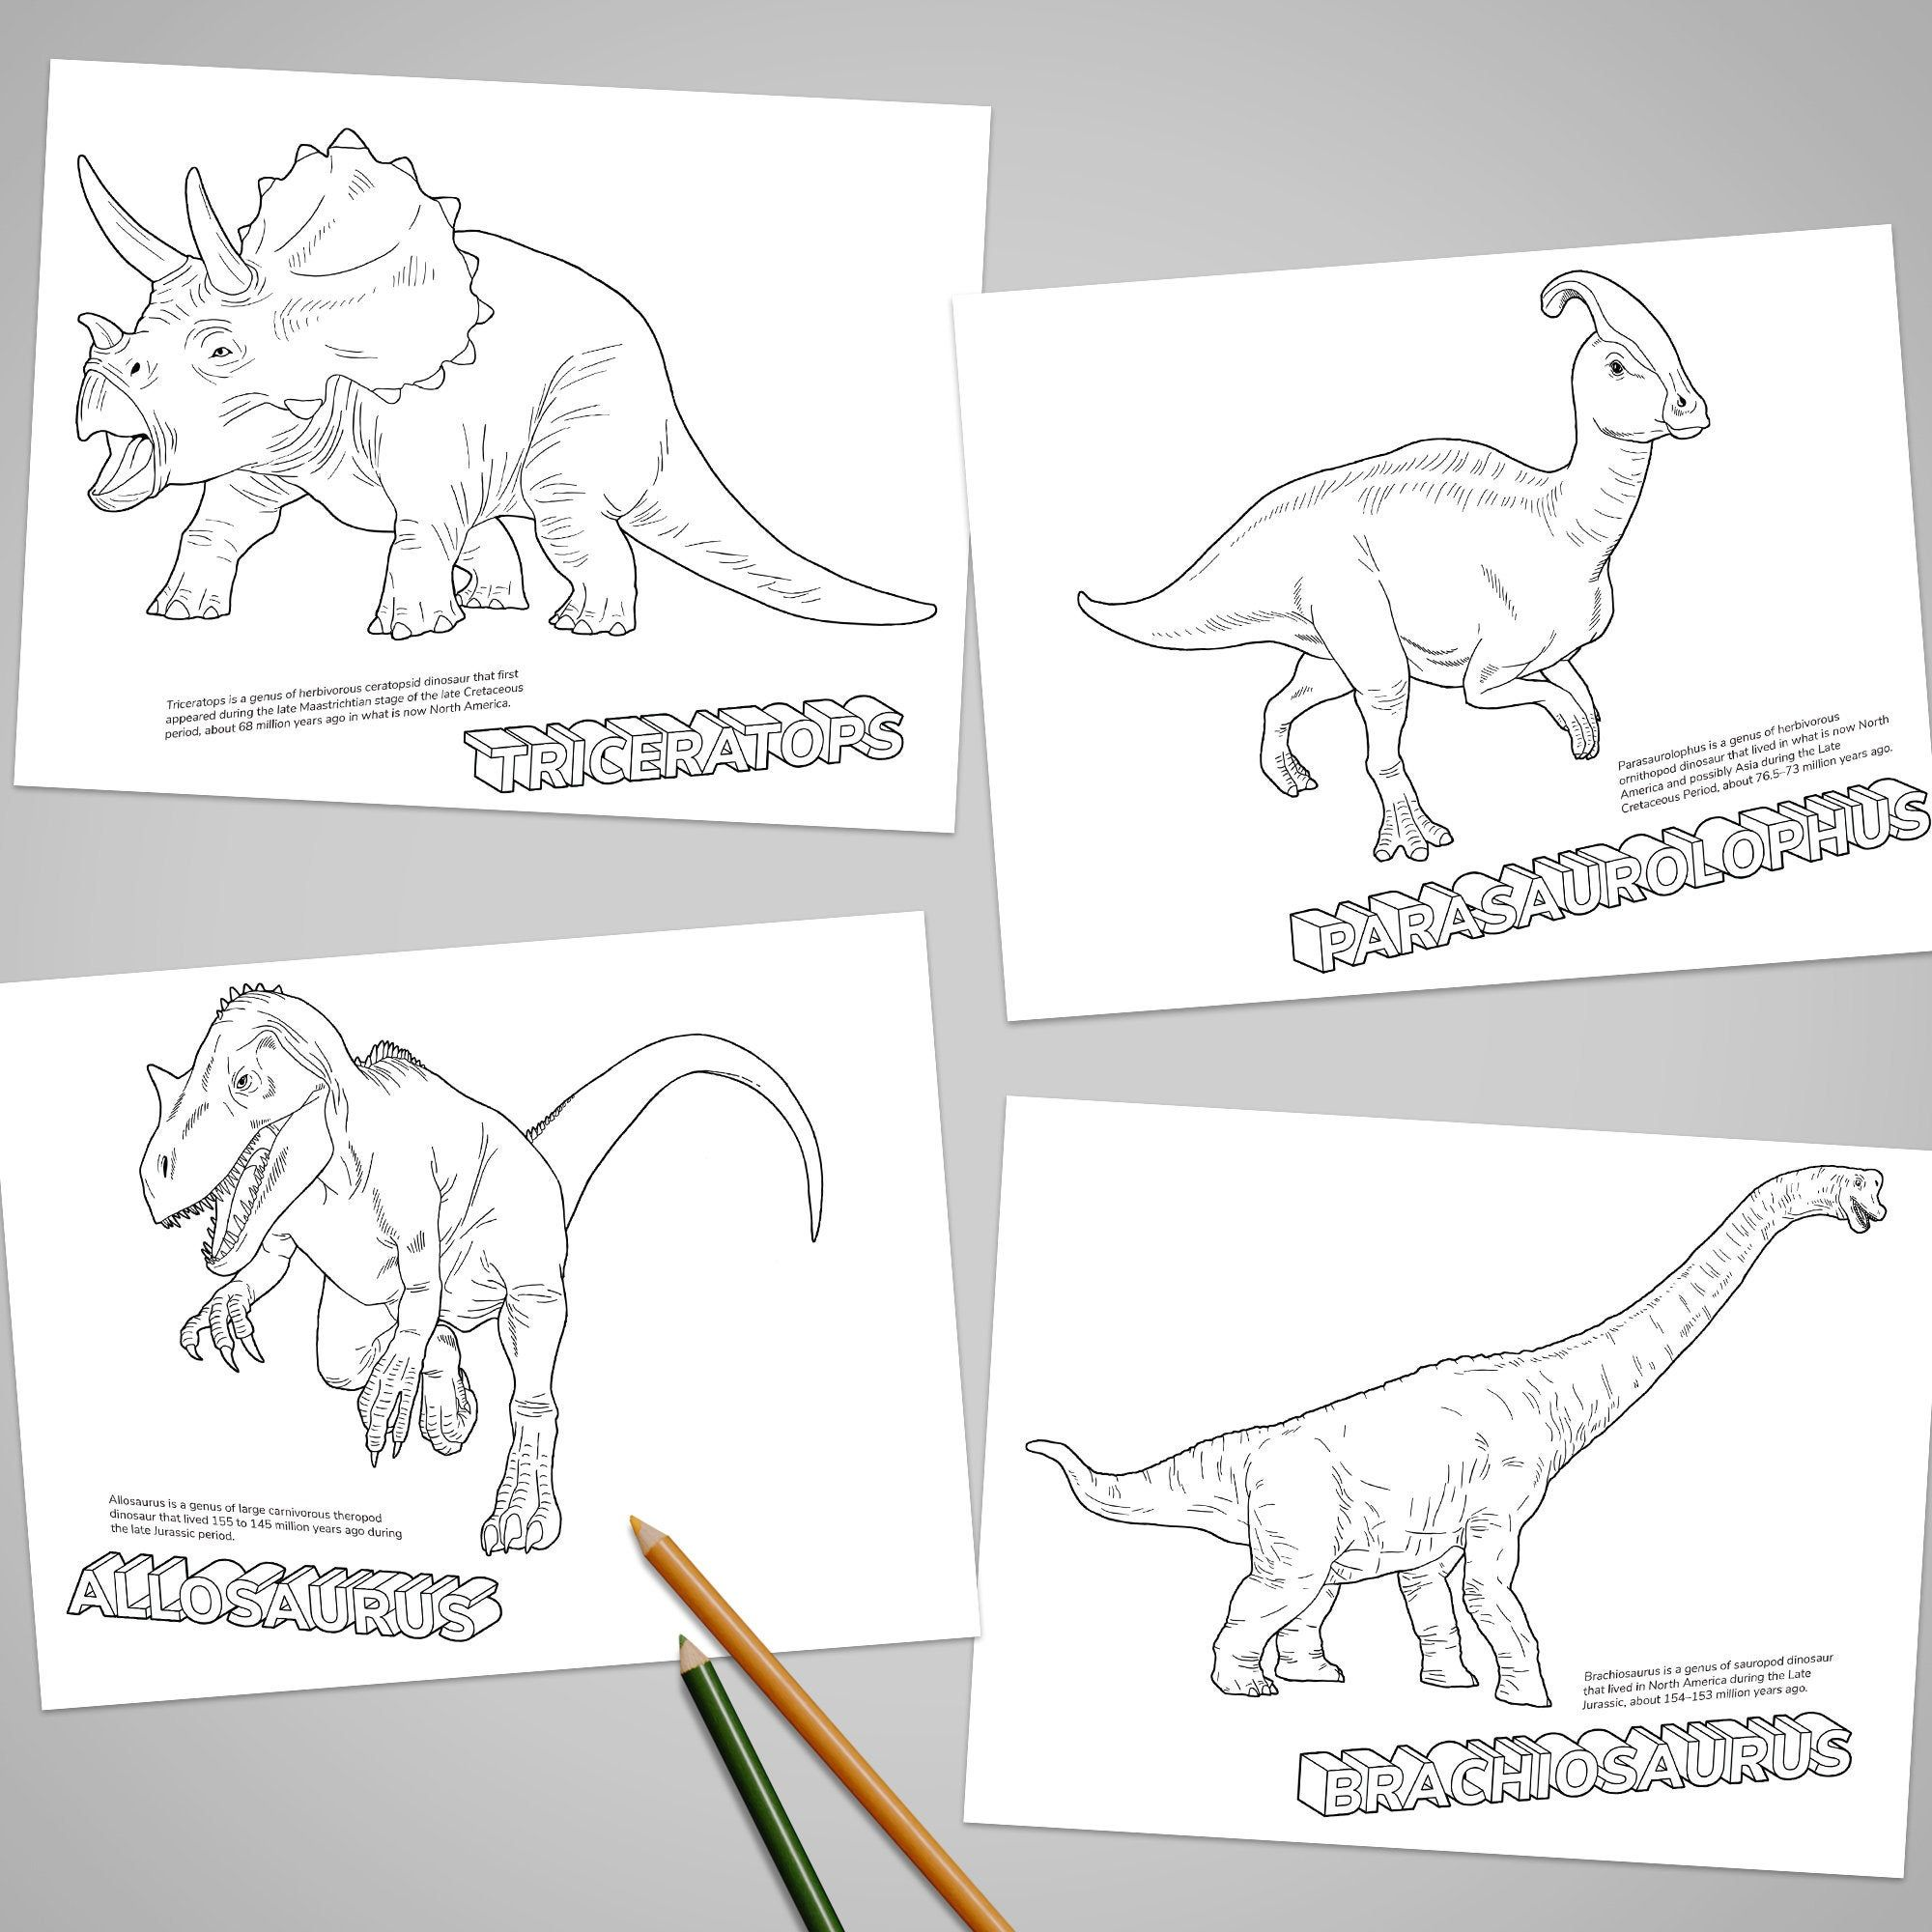 30 Dinosaurs Coloring Book Printable Art For Kid And Teens Etsy In 2021 Dinosaur Coloring Pages Coloring Books Dinosaur Coloring